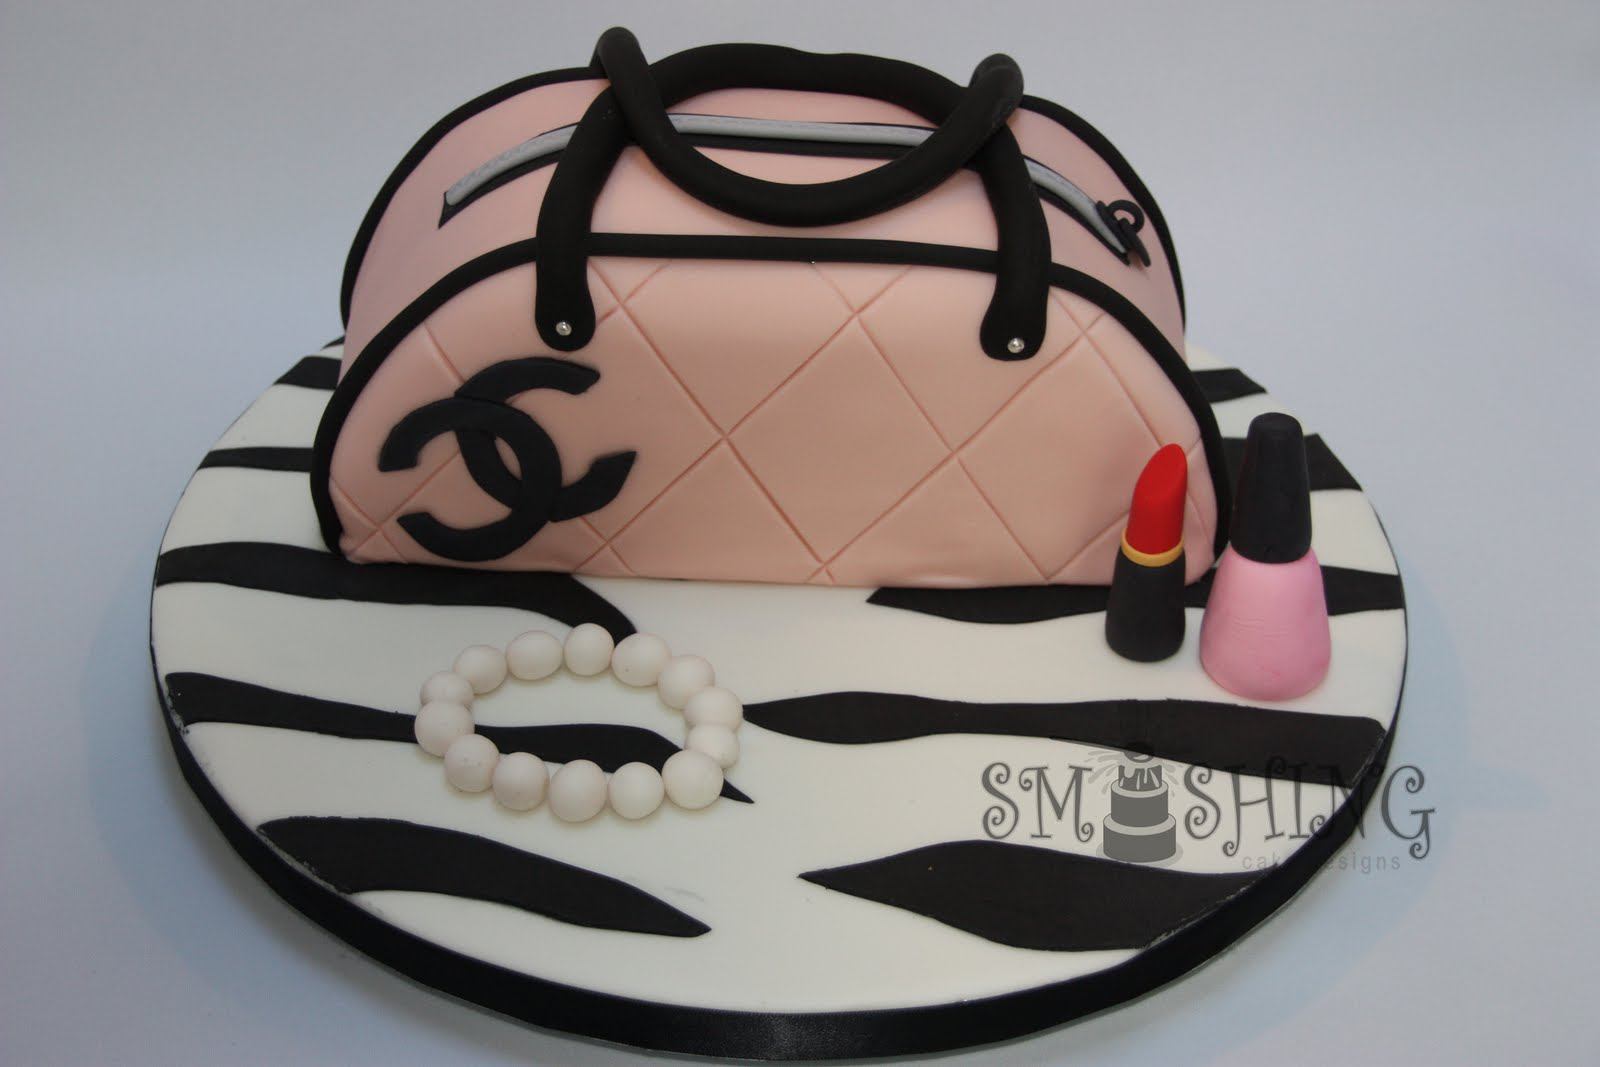 Smashing Cake Designs: For all you fashion ladies out there